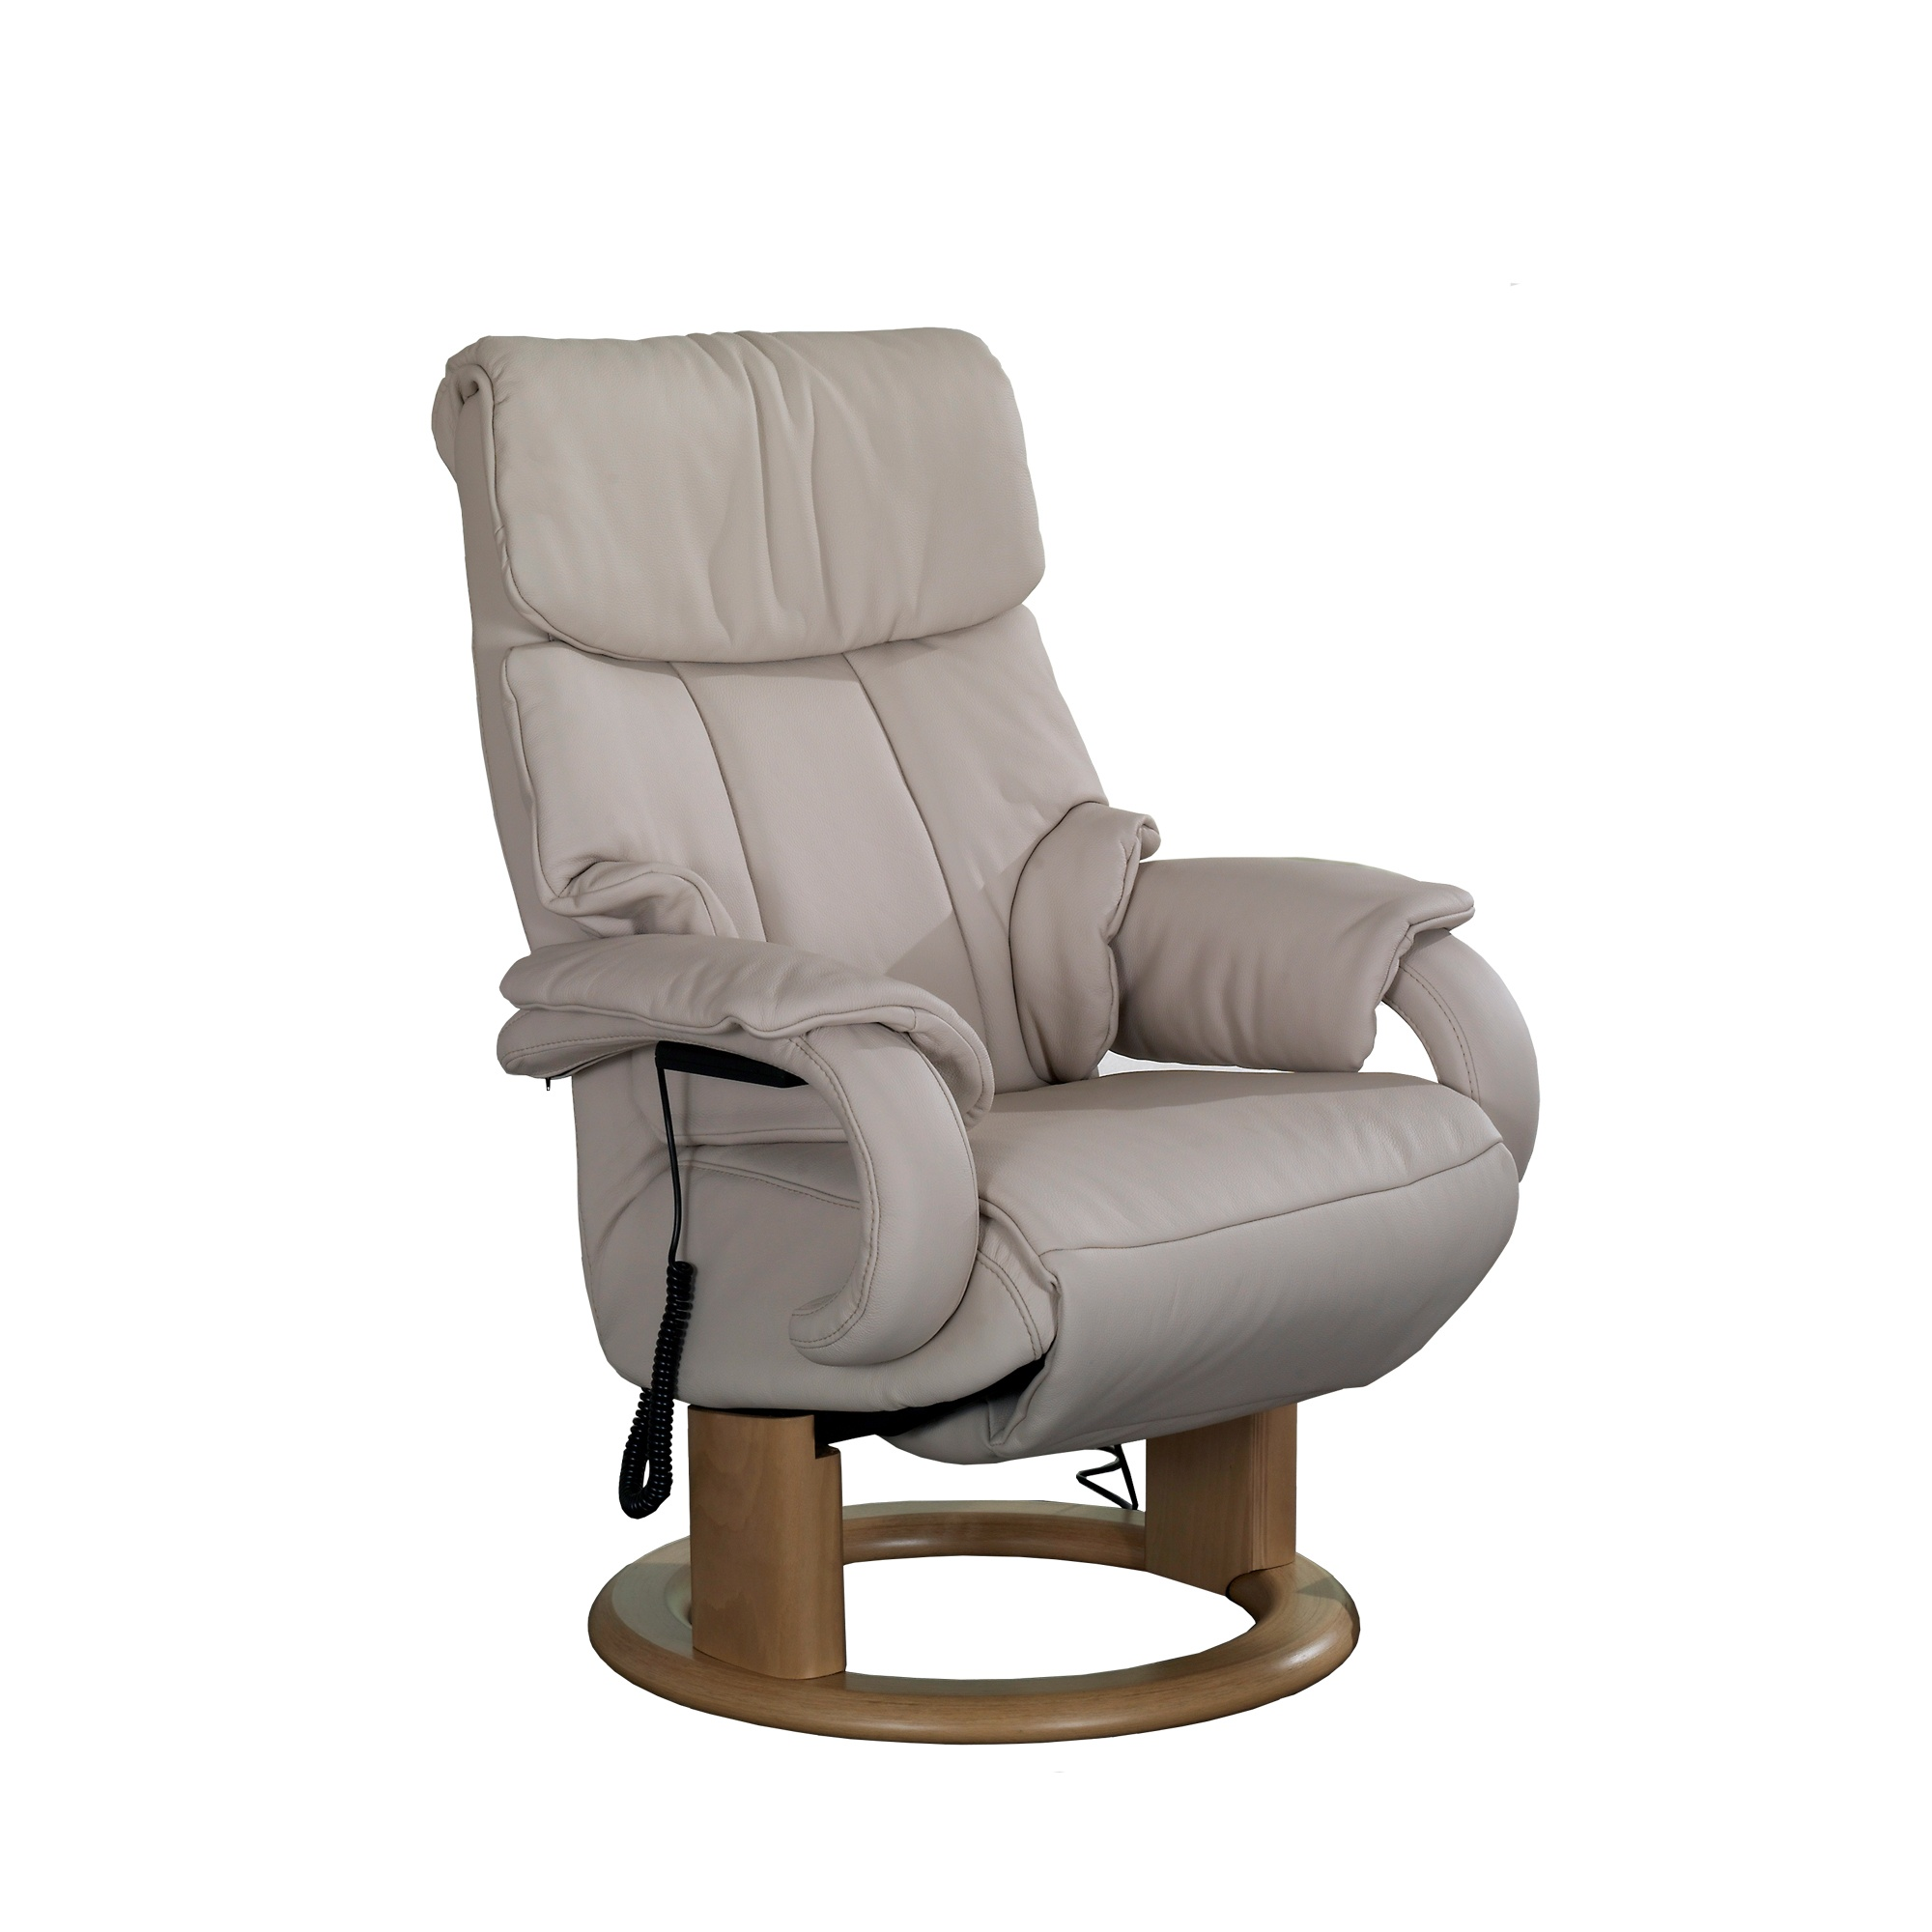 7445 Cosyform Tobi Himolla Tobi Electric Recliner Armchair